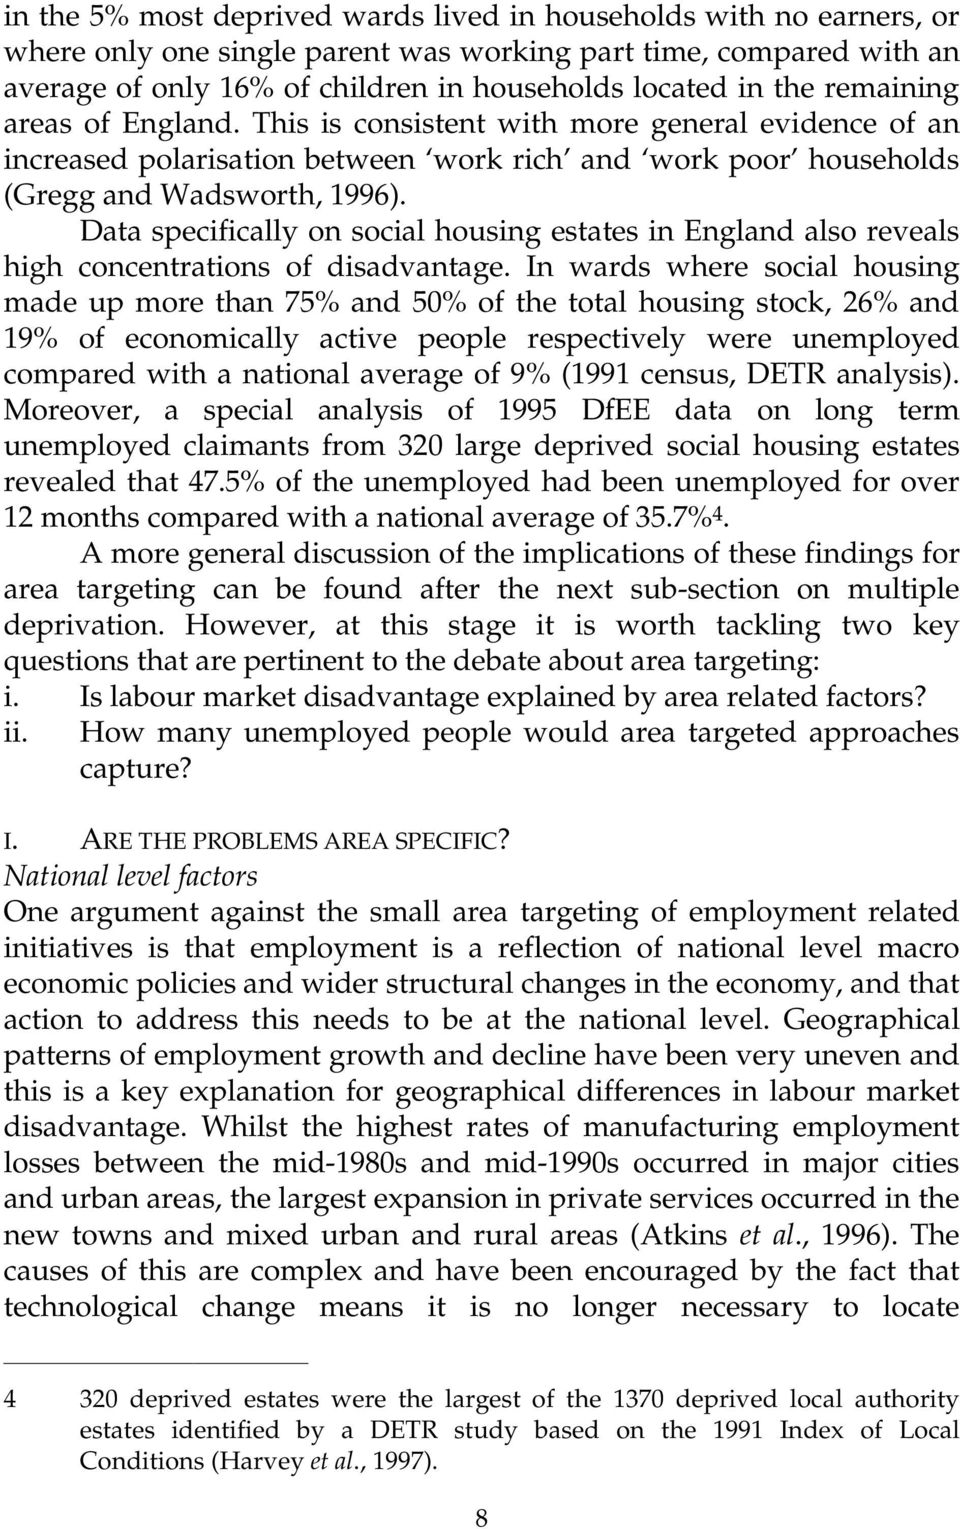 Data specifically on social housing estates in England also reveals high concentrations of disadvantage.